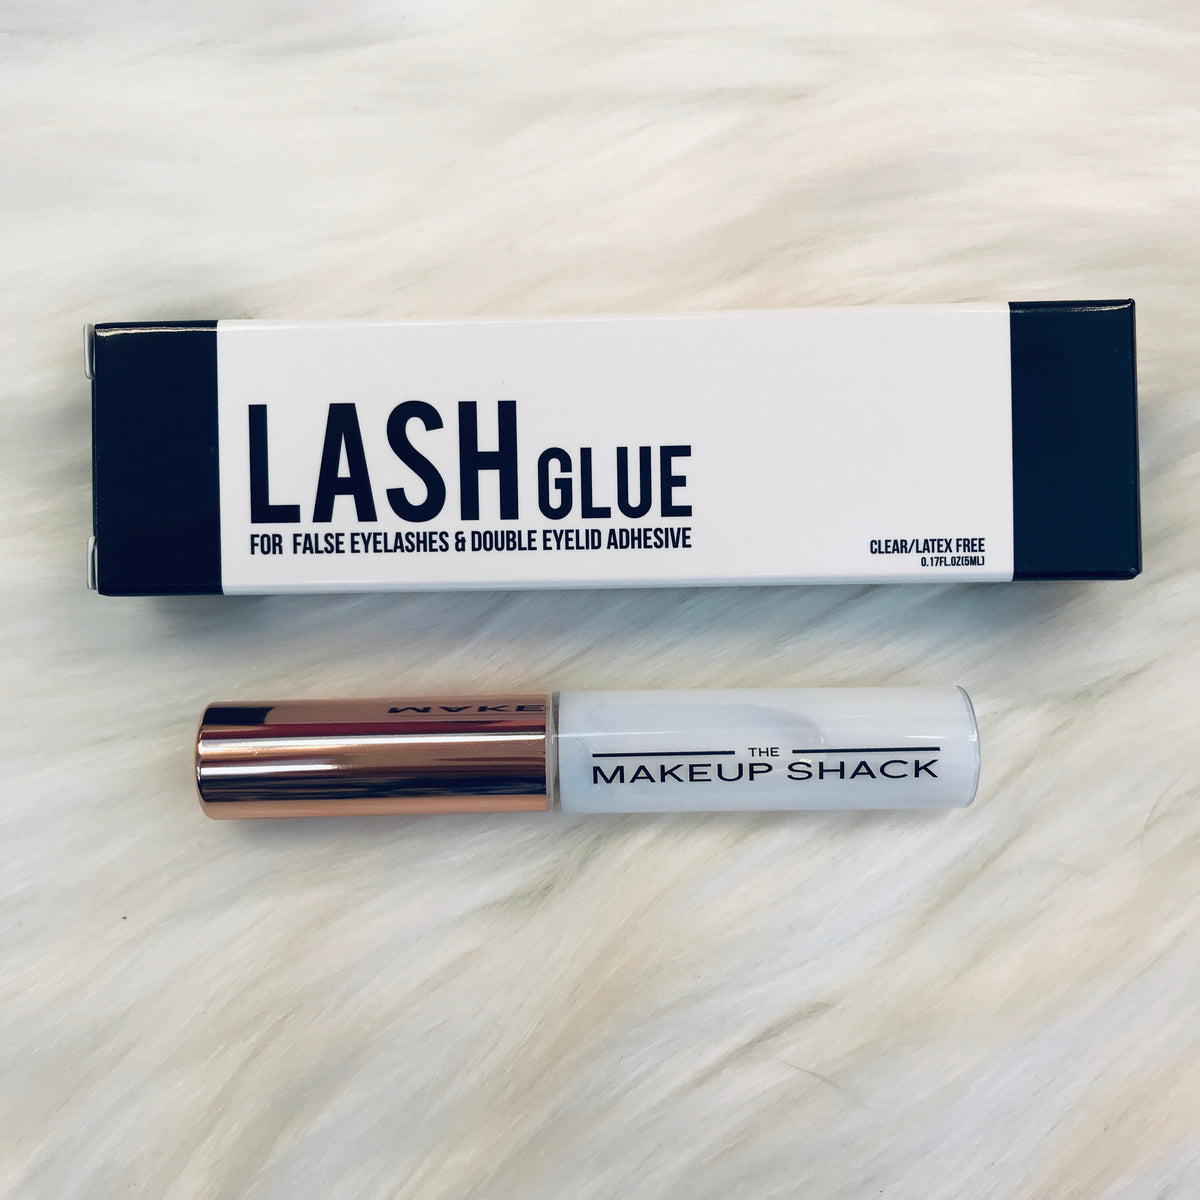 The Makeup Shack lash glue- Clear